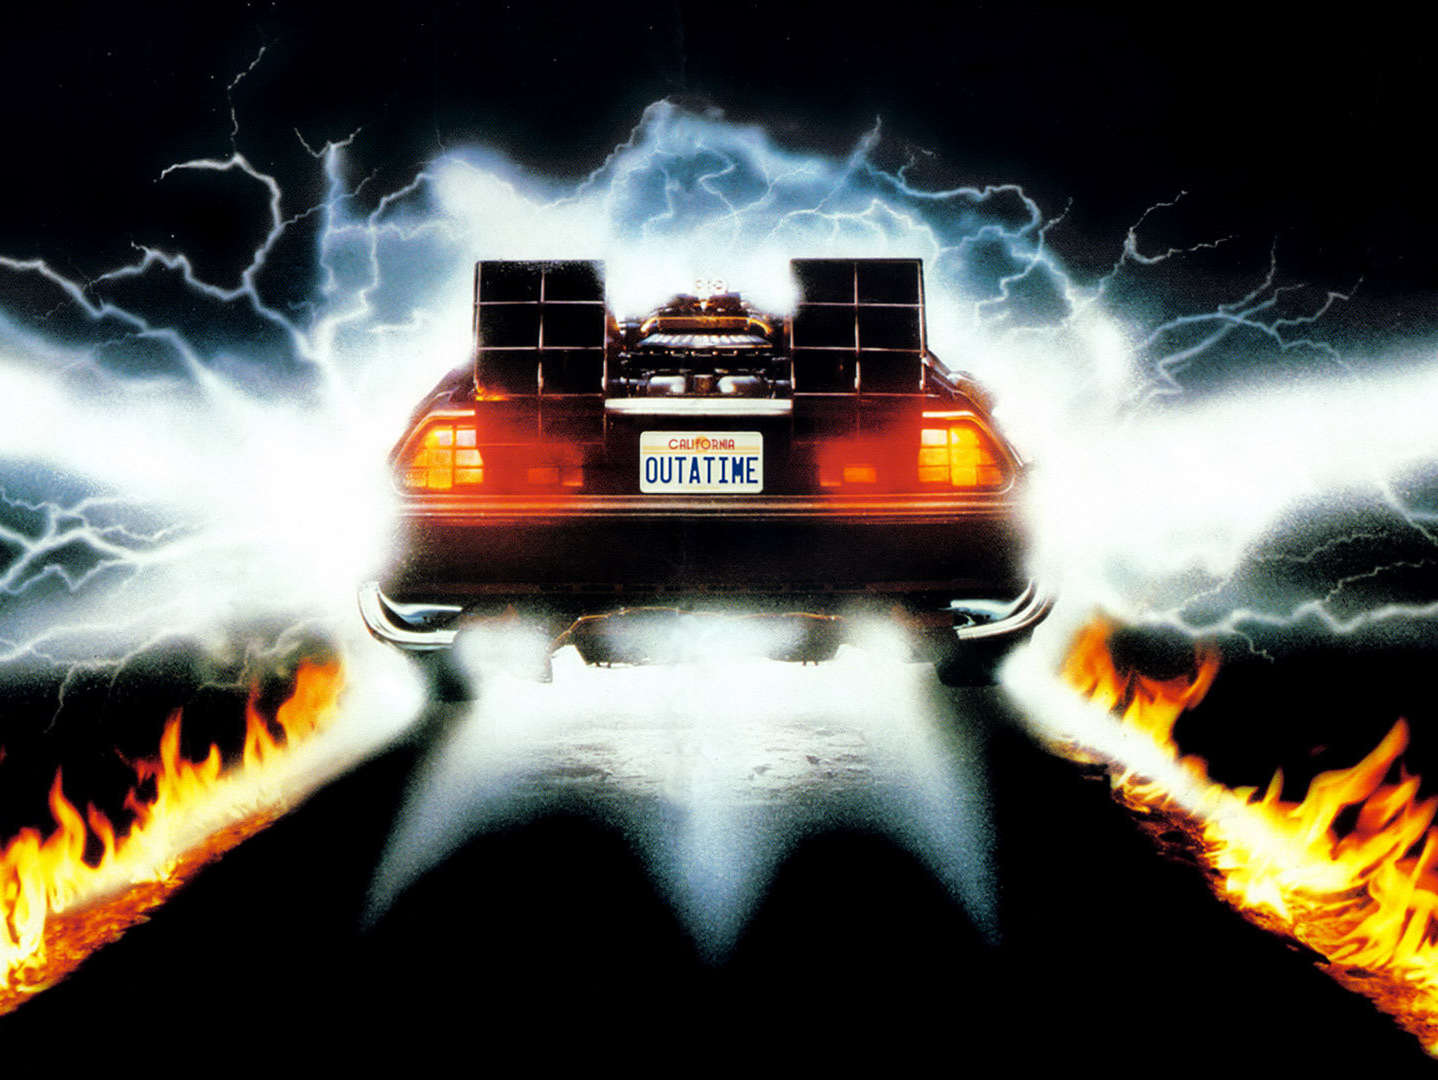 Back To The Future is the greated movie of all time